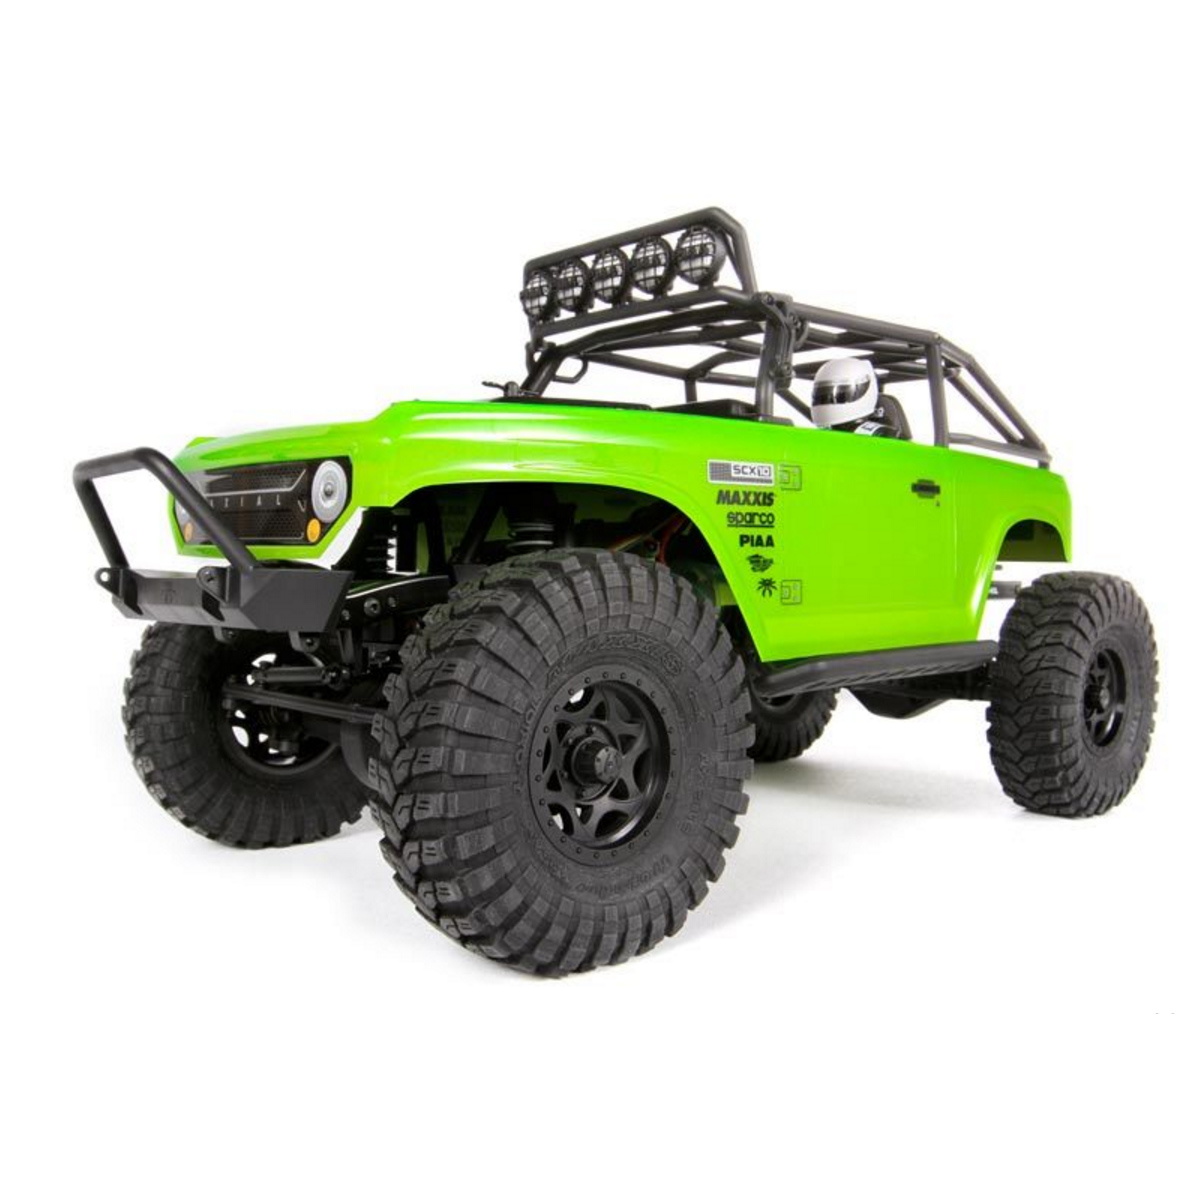 Axial R C : Axial scx deadbolt rc truck at hobby warehouse